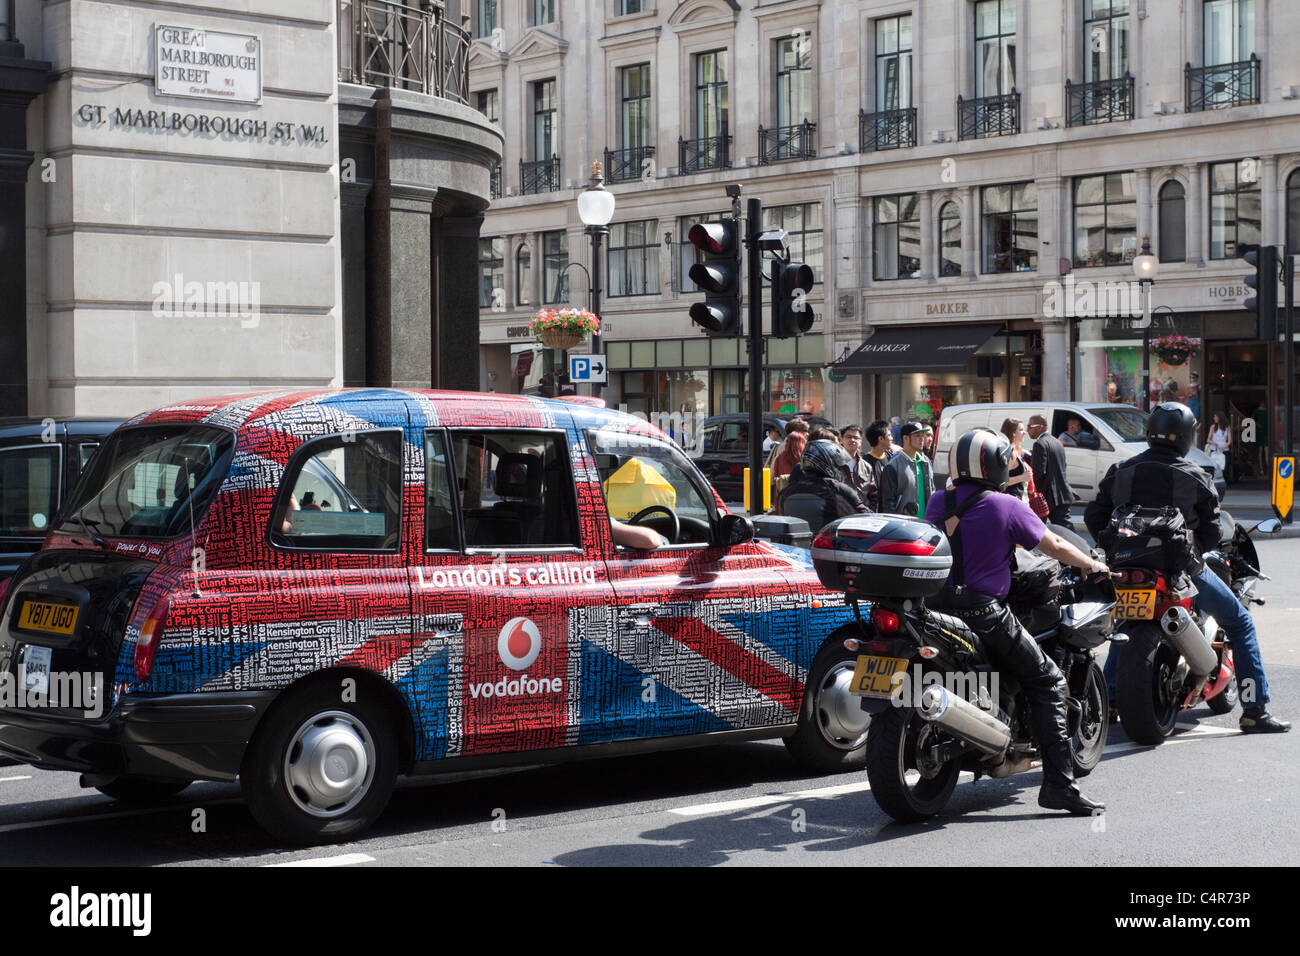 London taxi cab and motorcycles on Great Marlborough Street, London, England - Stock Image